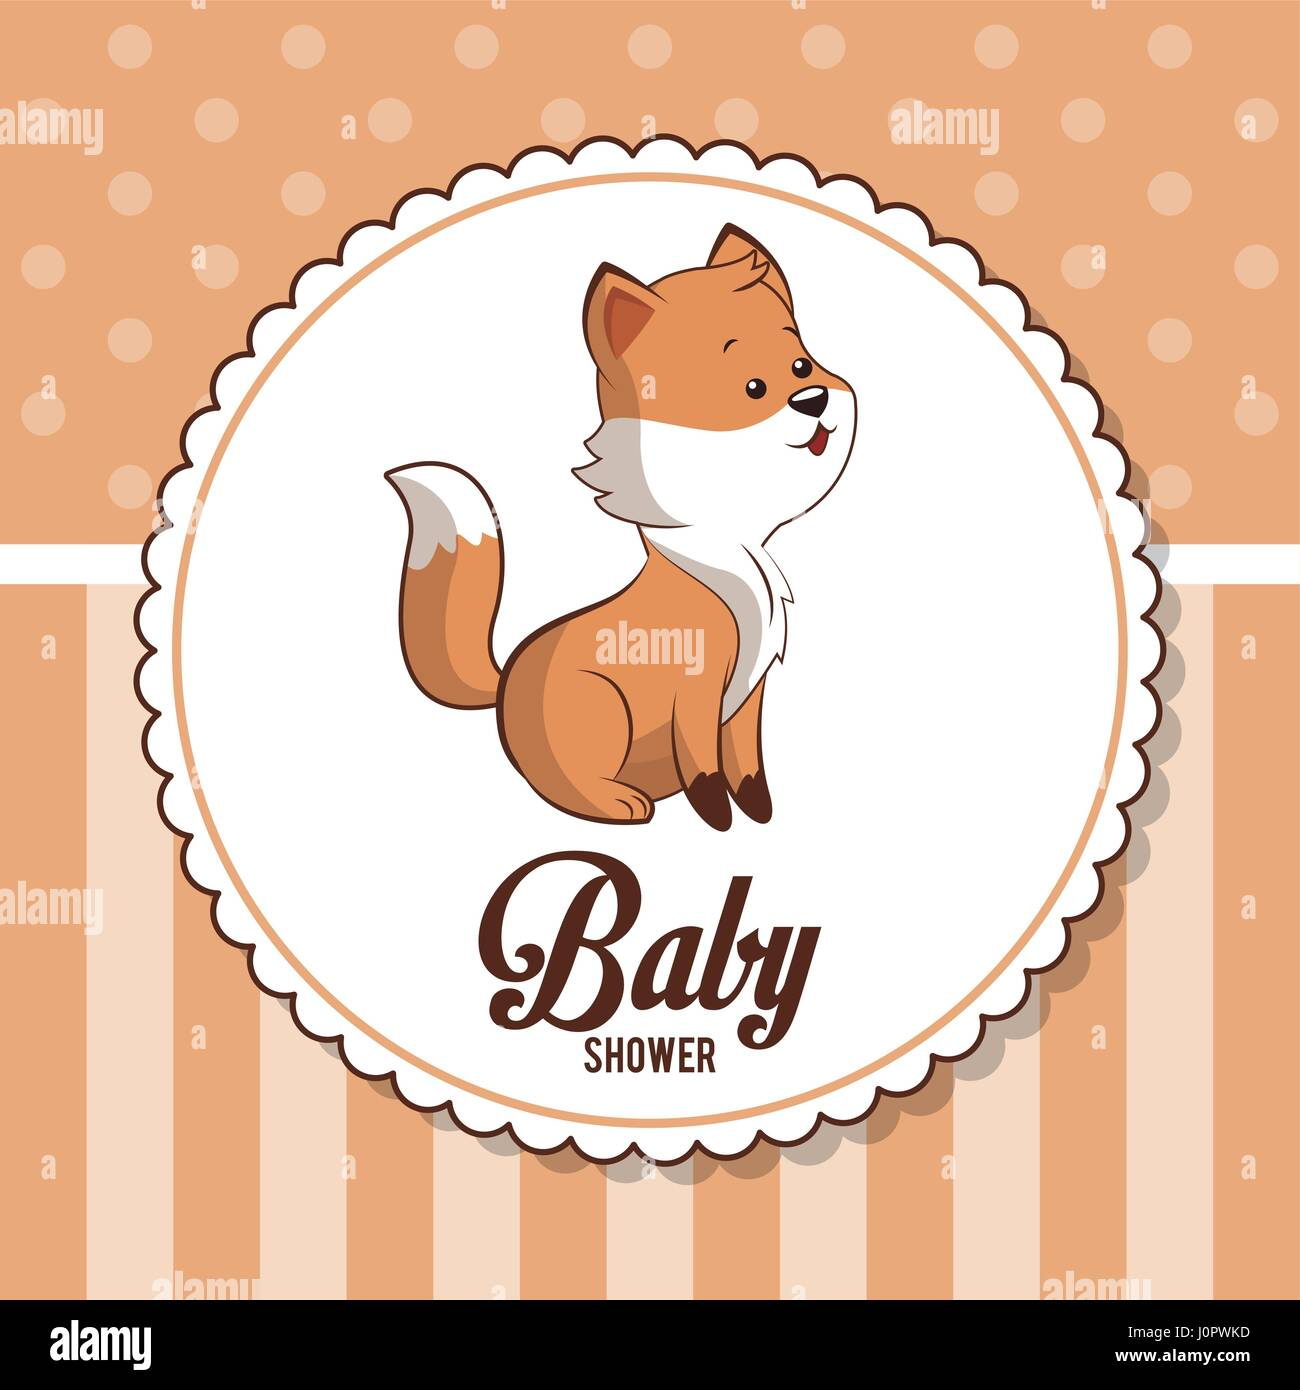 Baby Shower Card Invitation Greeting Cute Fox Stock Vector Art